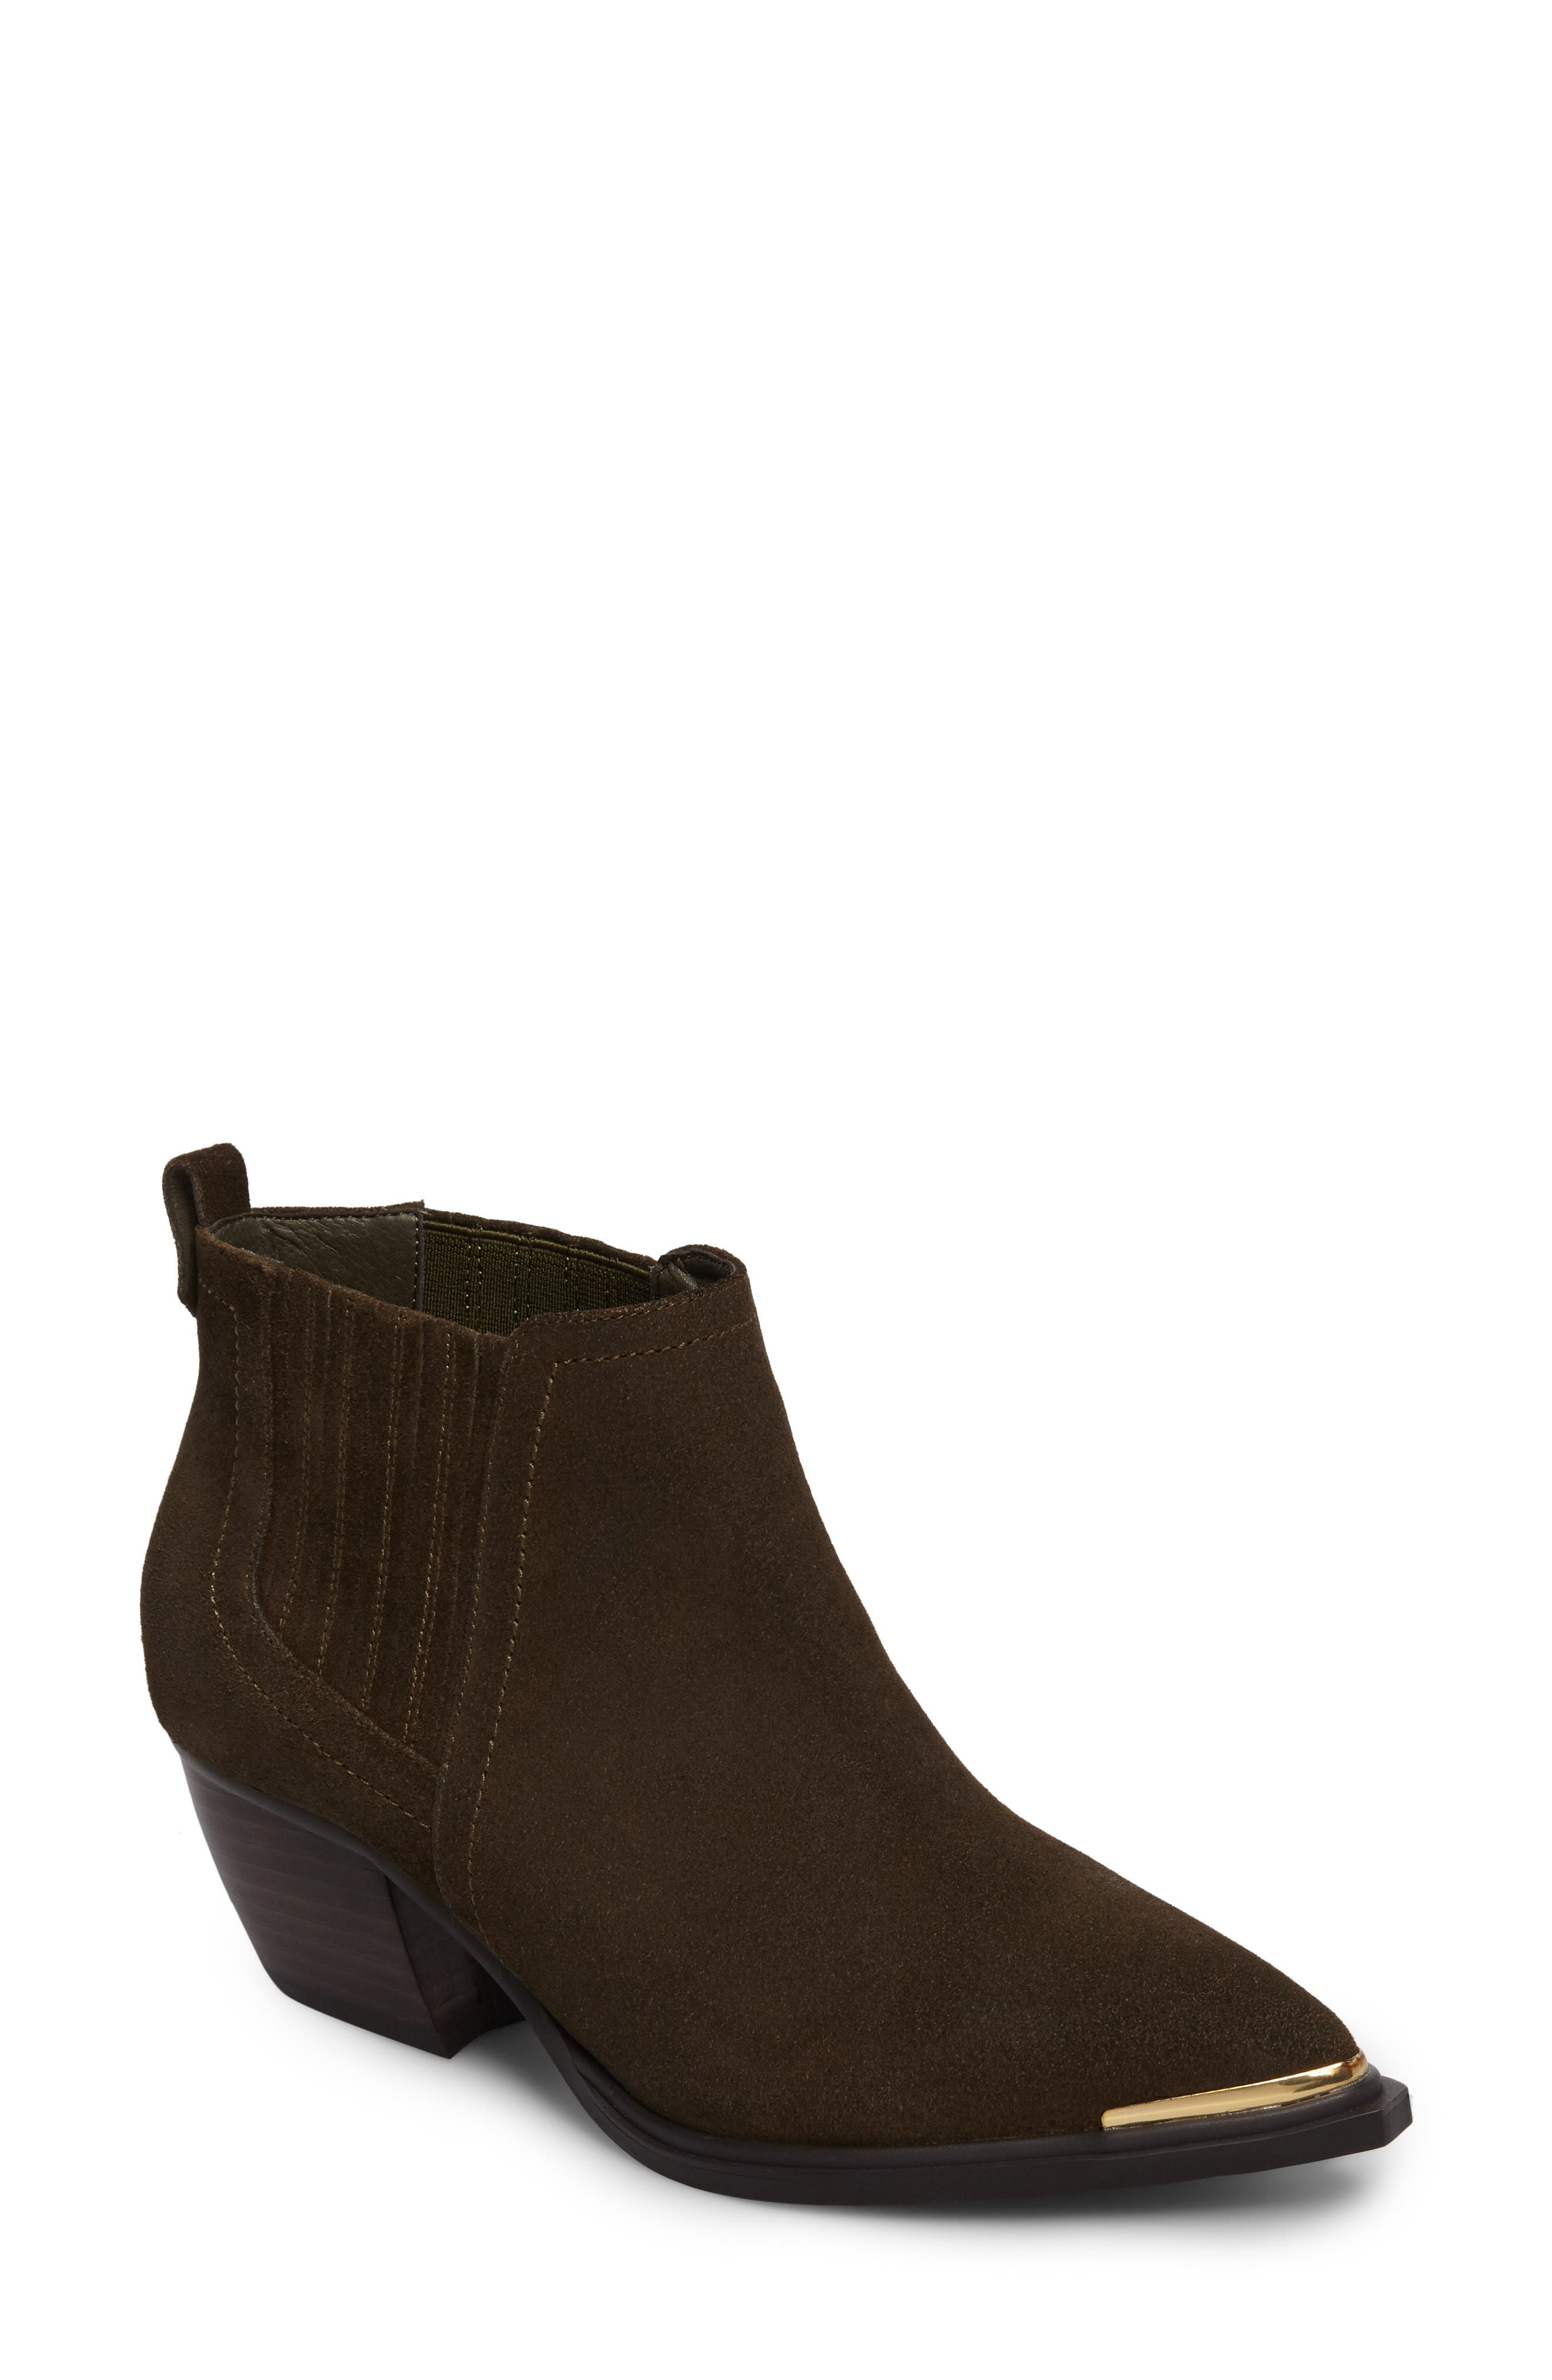 Cardinal Pointy Toe Bootie,                         Main,                         color, Khaki Suede